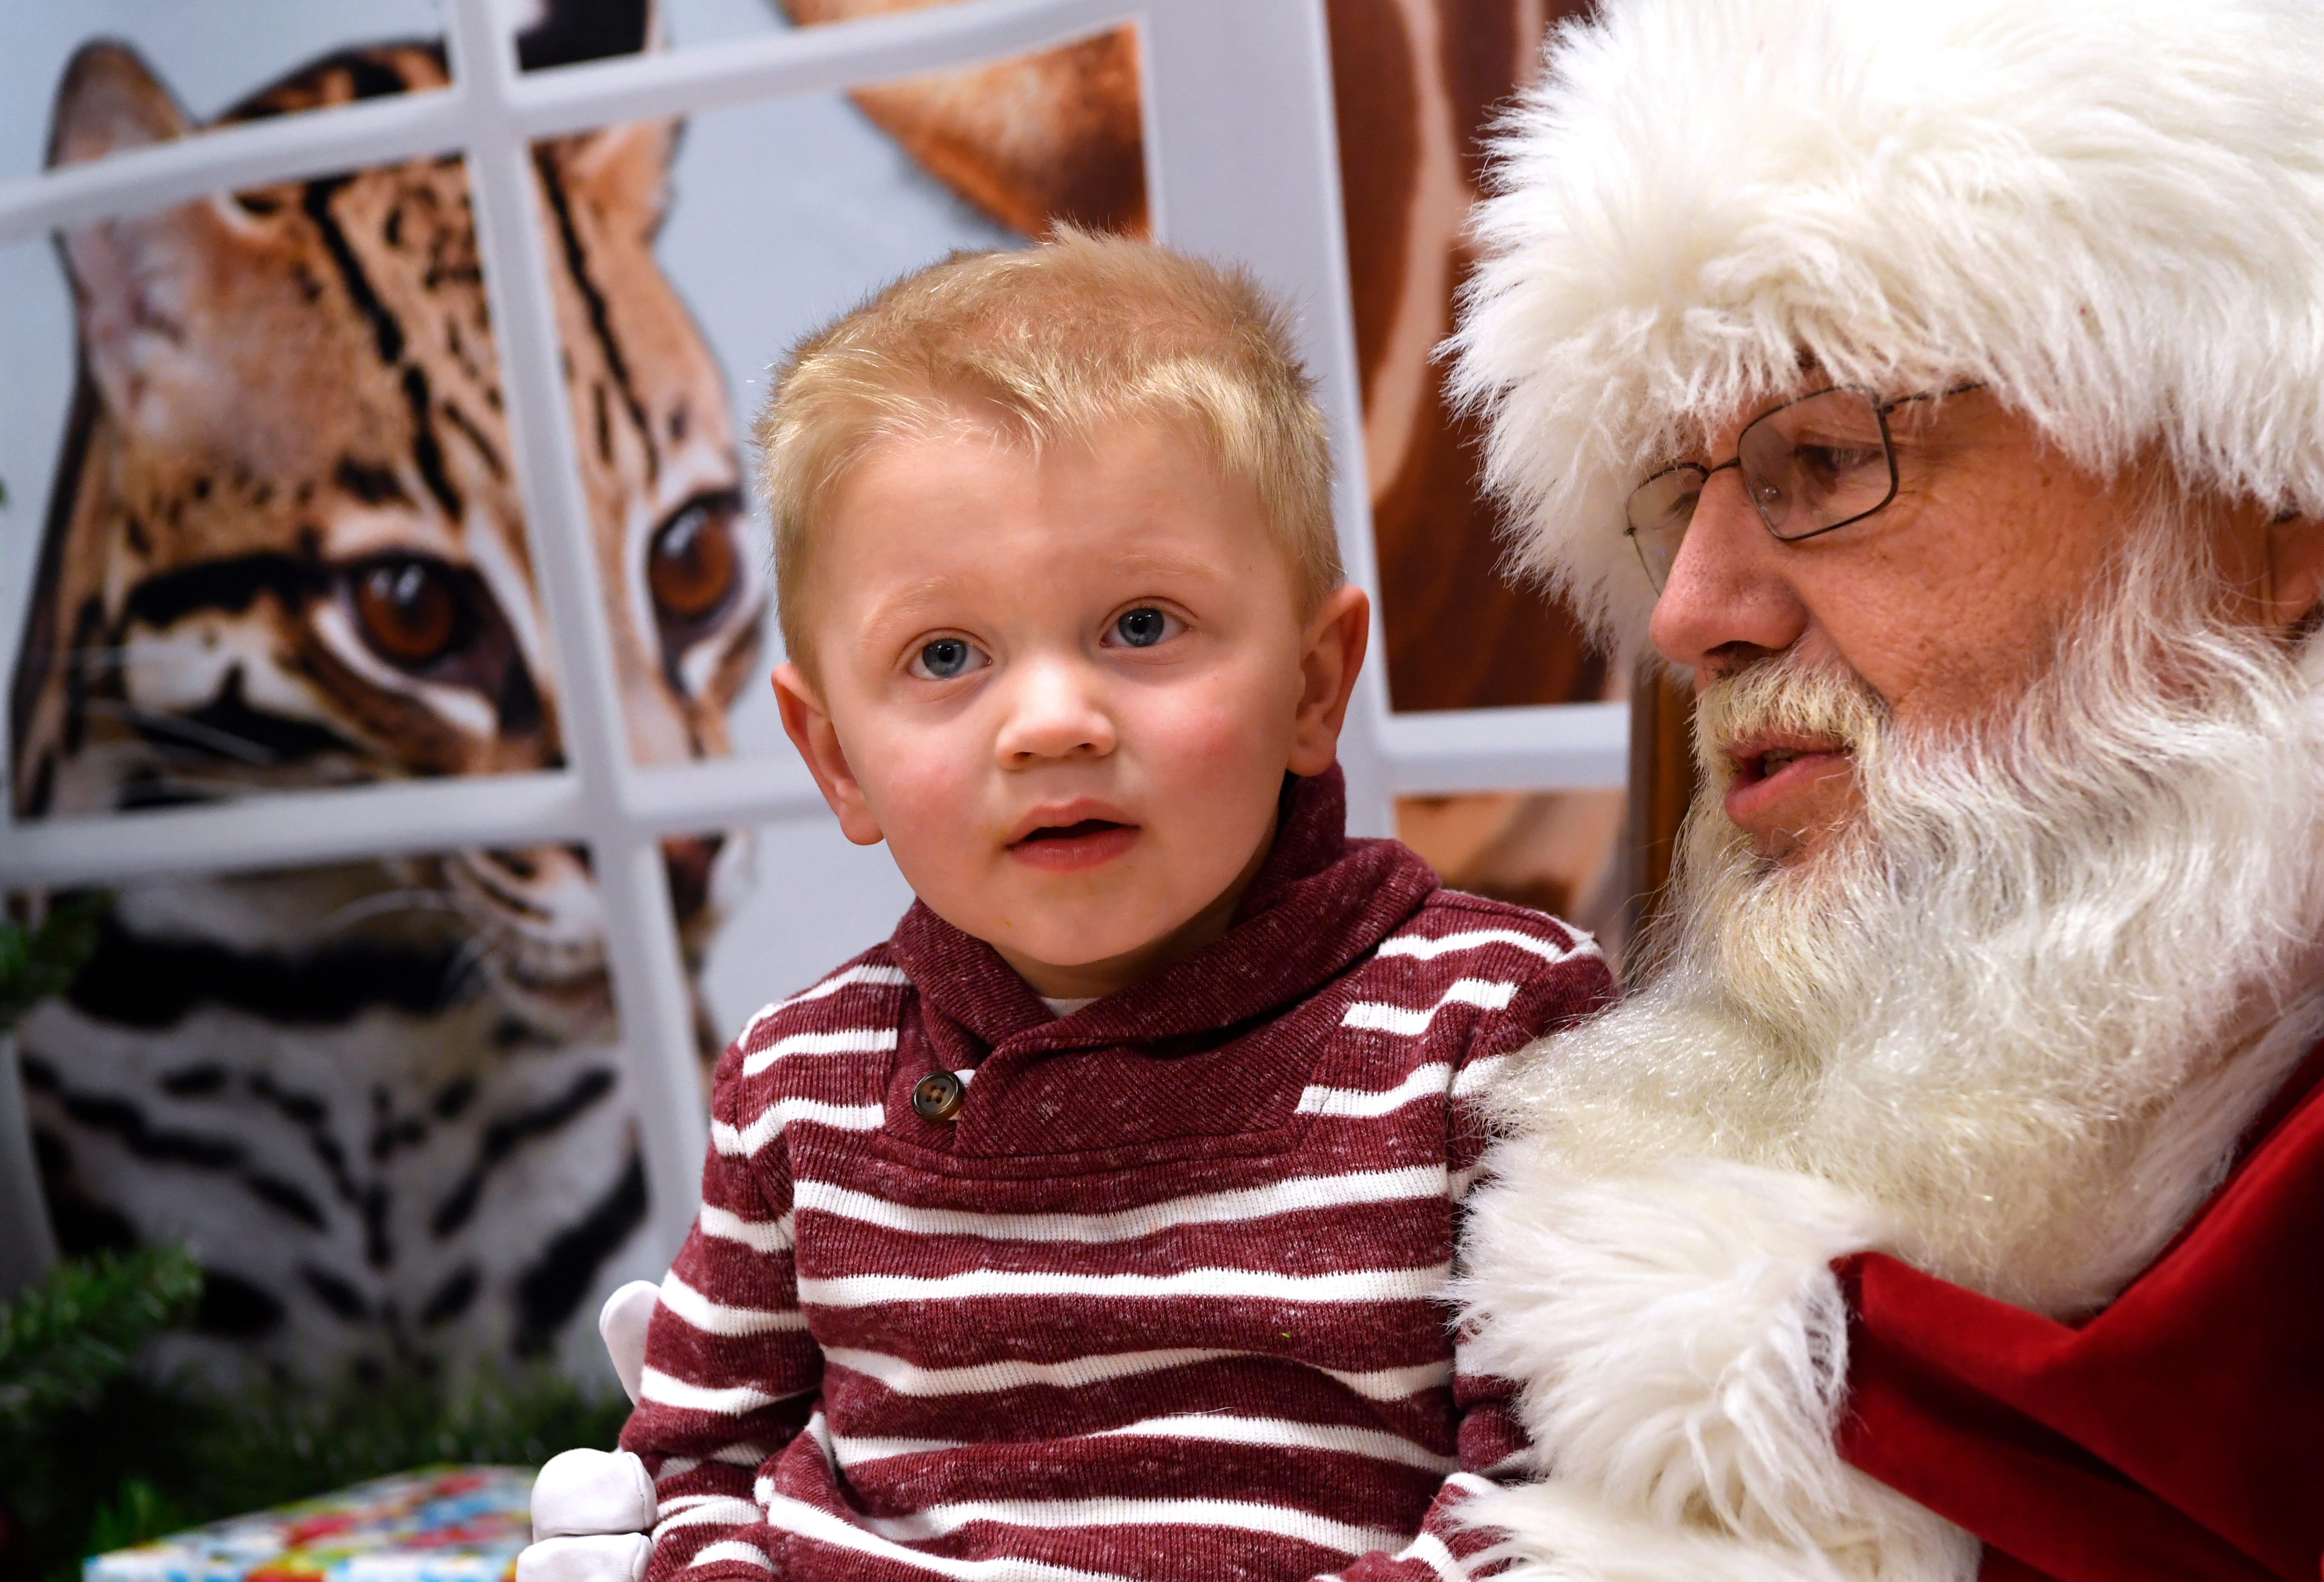 Austin Cox, 2, sits on Santa Claus' knee Dec. 8 at the Abilene Zoo. Breakfast with Santa is the zoo's annual Christmas fundraiser and was sold out both of the weekends in which it was held.